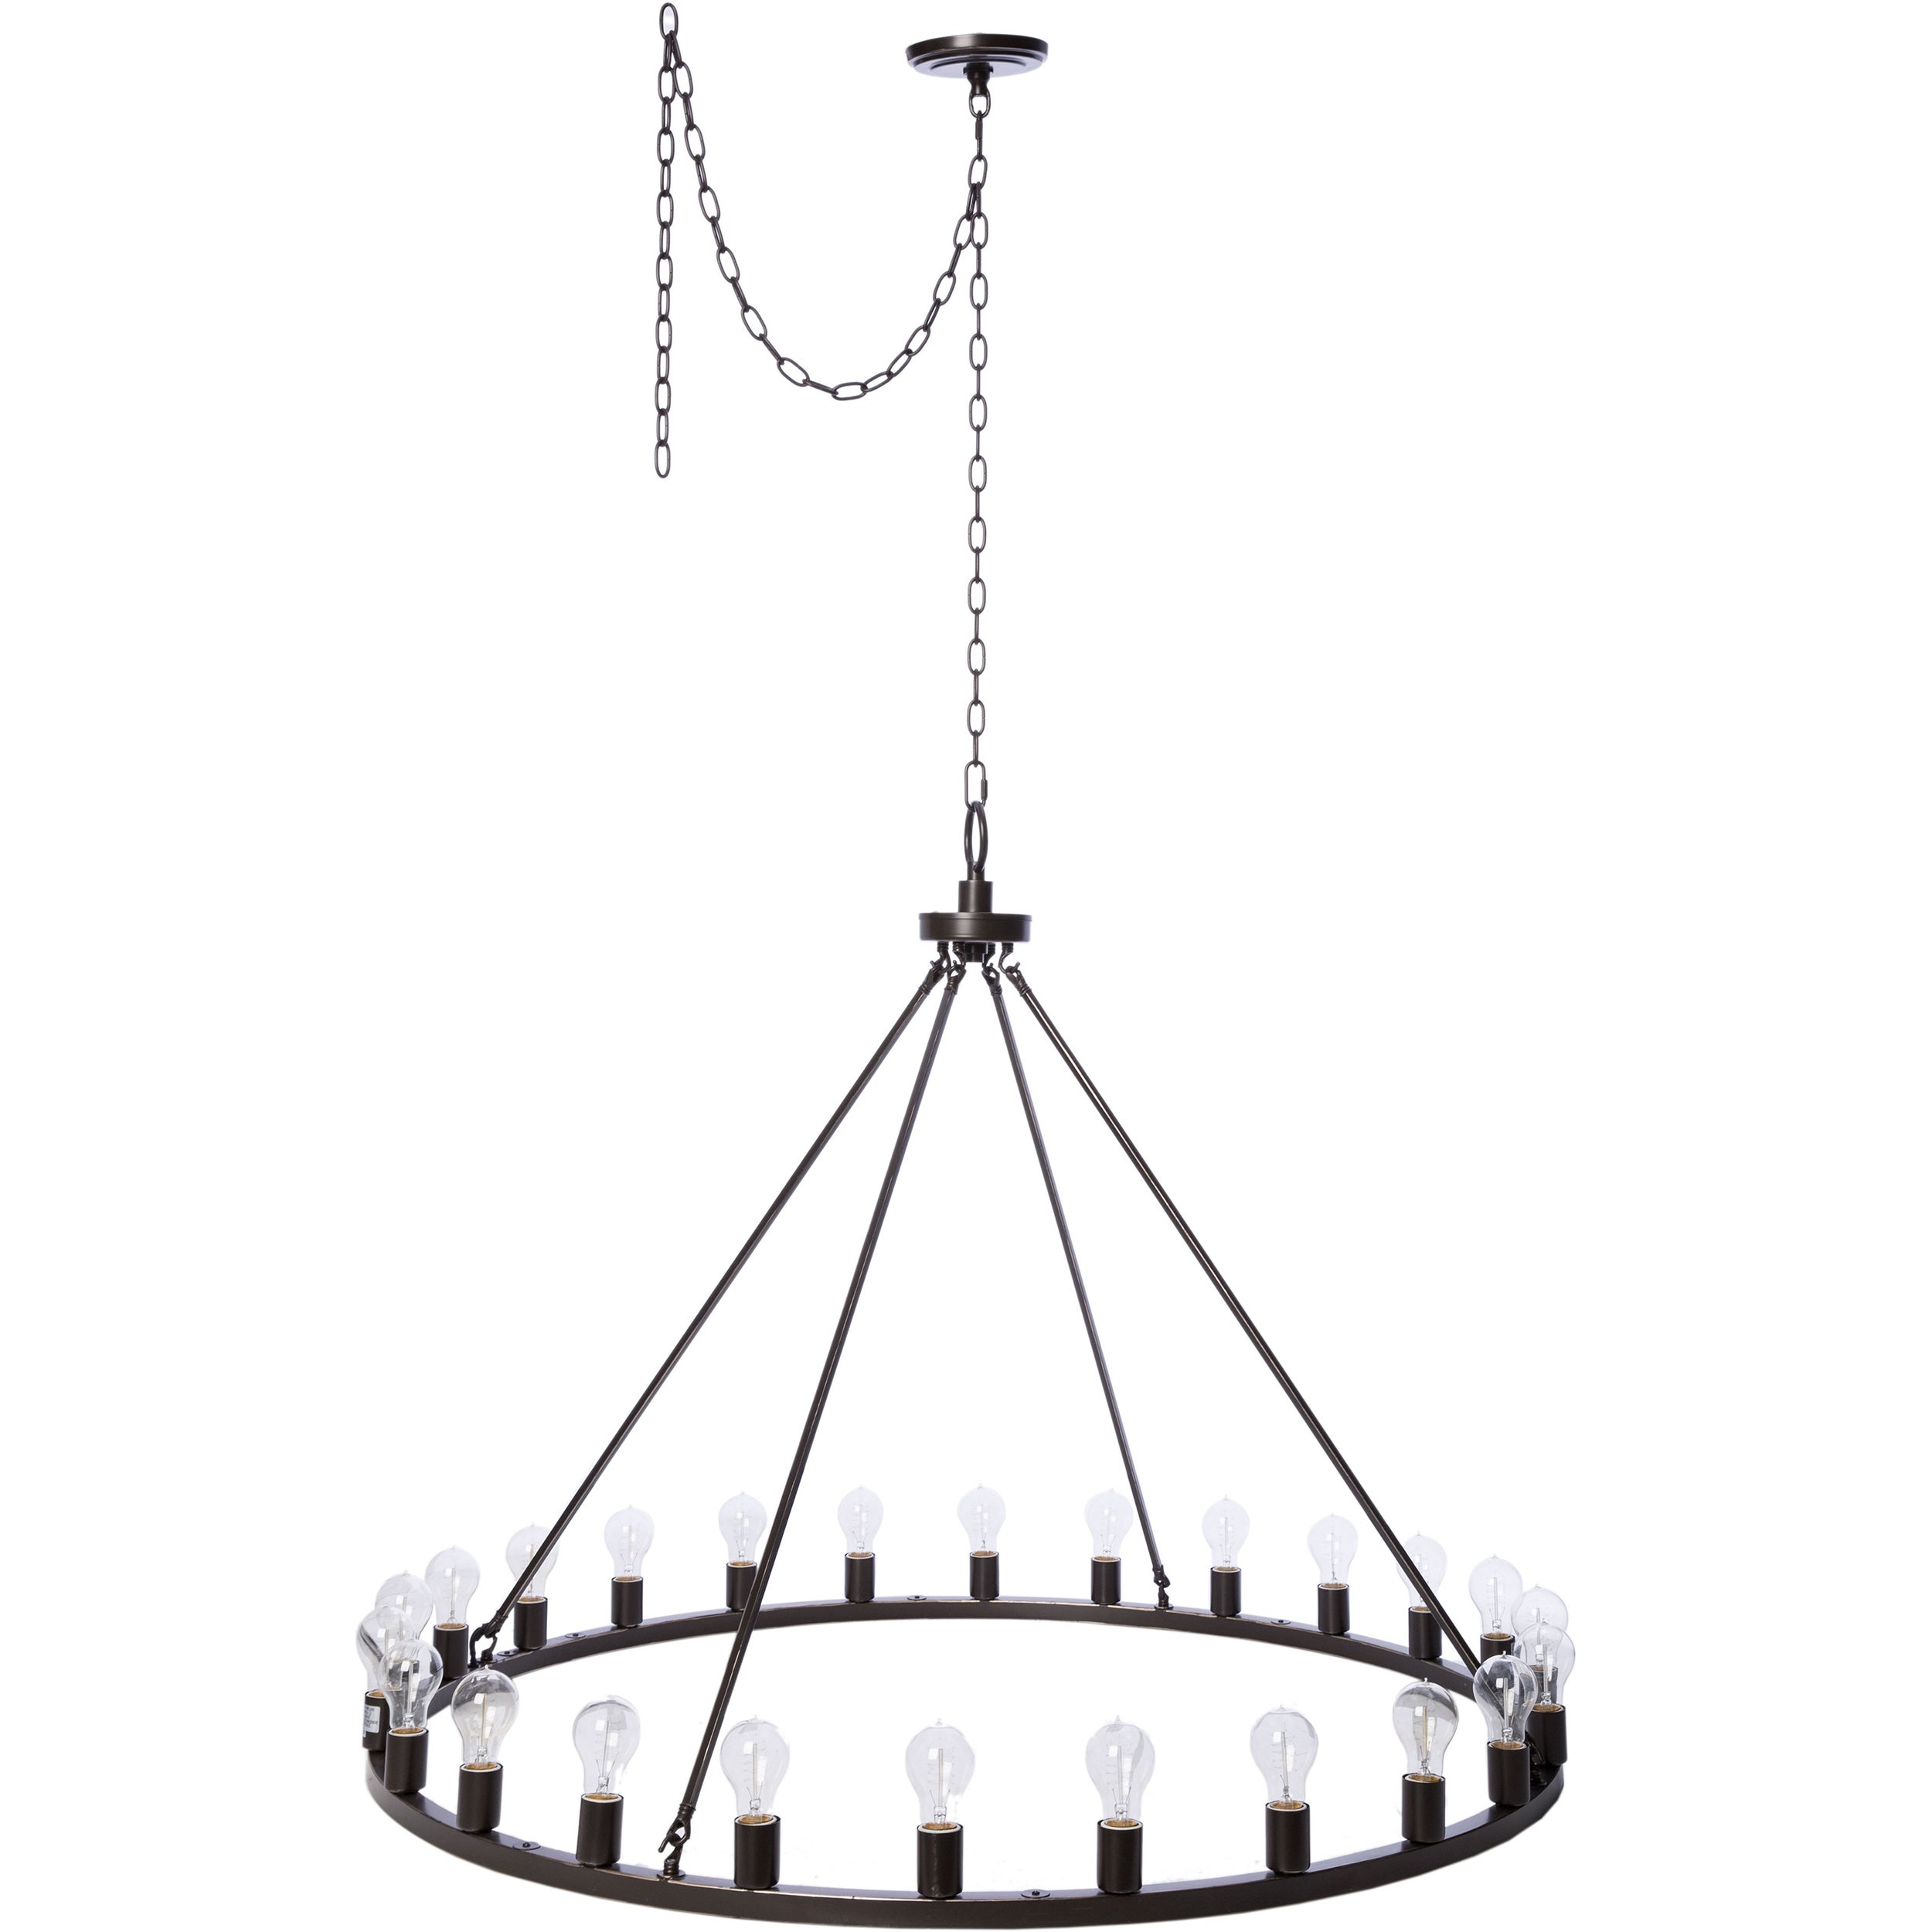 Liam oil rubbed bronze 24 light chandelier free shipping today liam oil rubbed bronze 24 light chandelier free shipping today overstock 16100945 arubaitofo Image collections